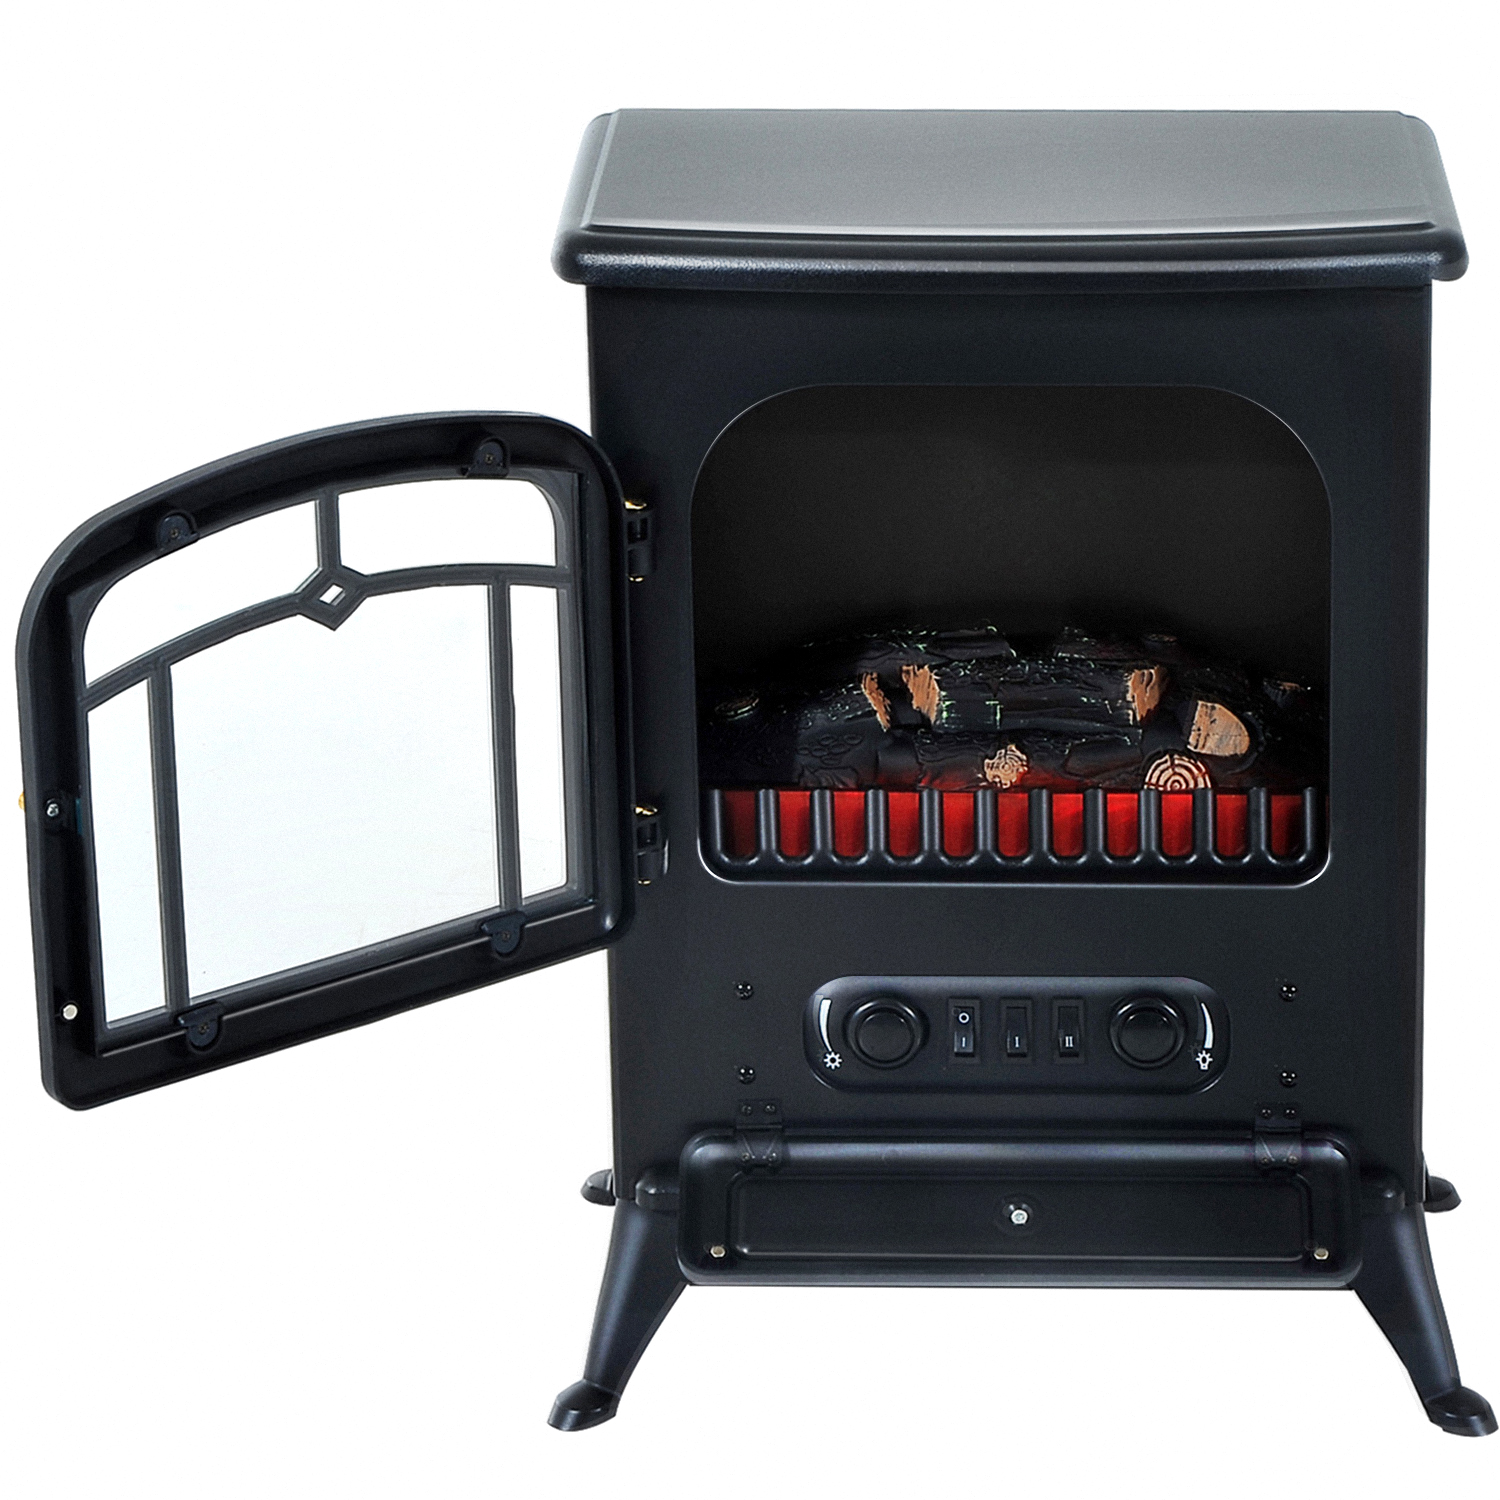 HOMCOM-750-1500W-Portable-Electric-Fireplace-Stove-Heater-Adjustable-LED-Flames thumbnail 8